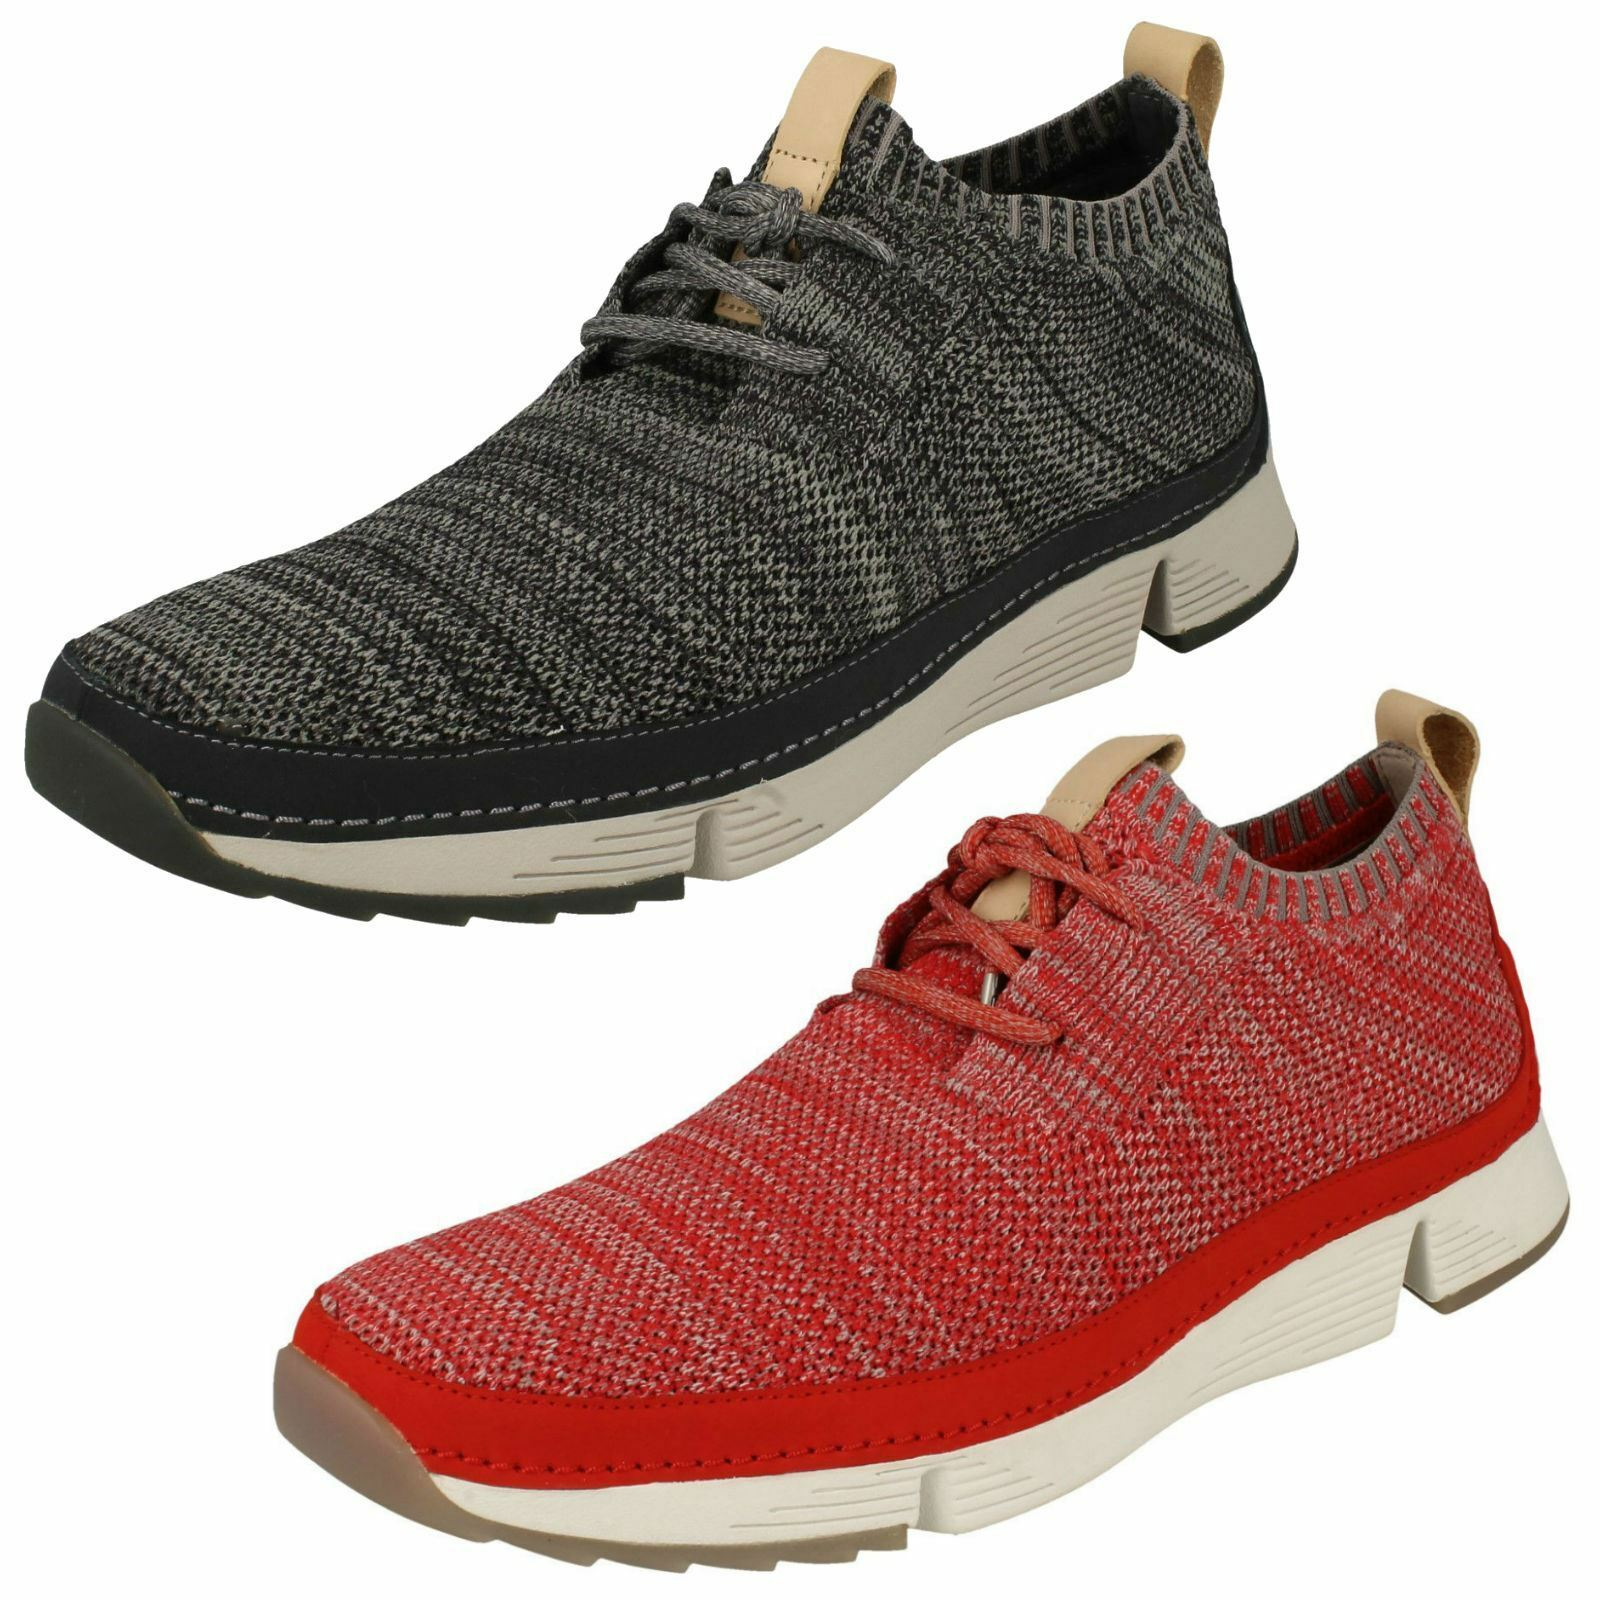 Hombre Clarks Trainers Casual Lace Up Trainers Clarks - Tri Native 732f4e